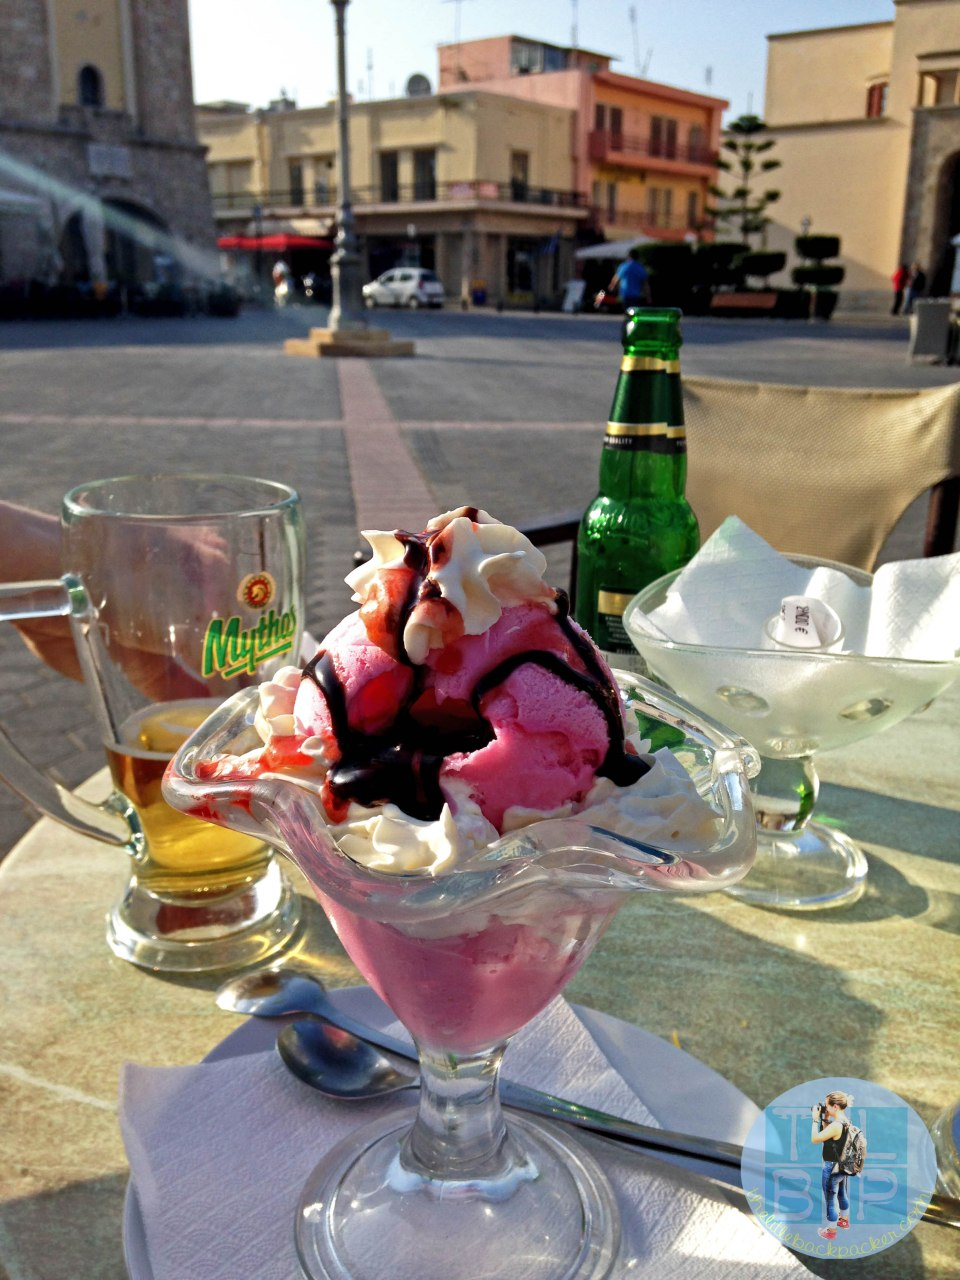 Nothing better than sittg in Kos Town, drinking beer and eating ice cream